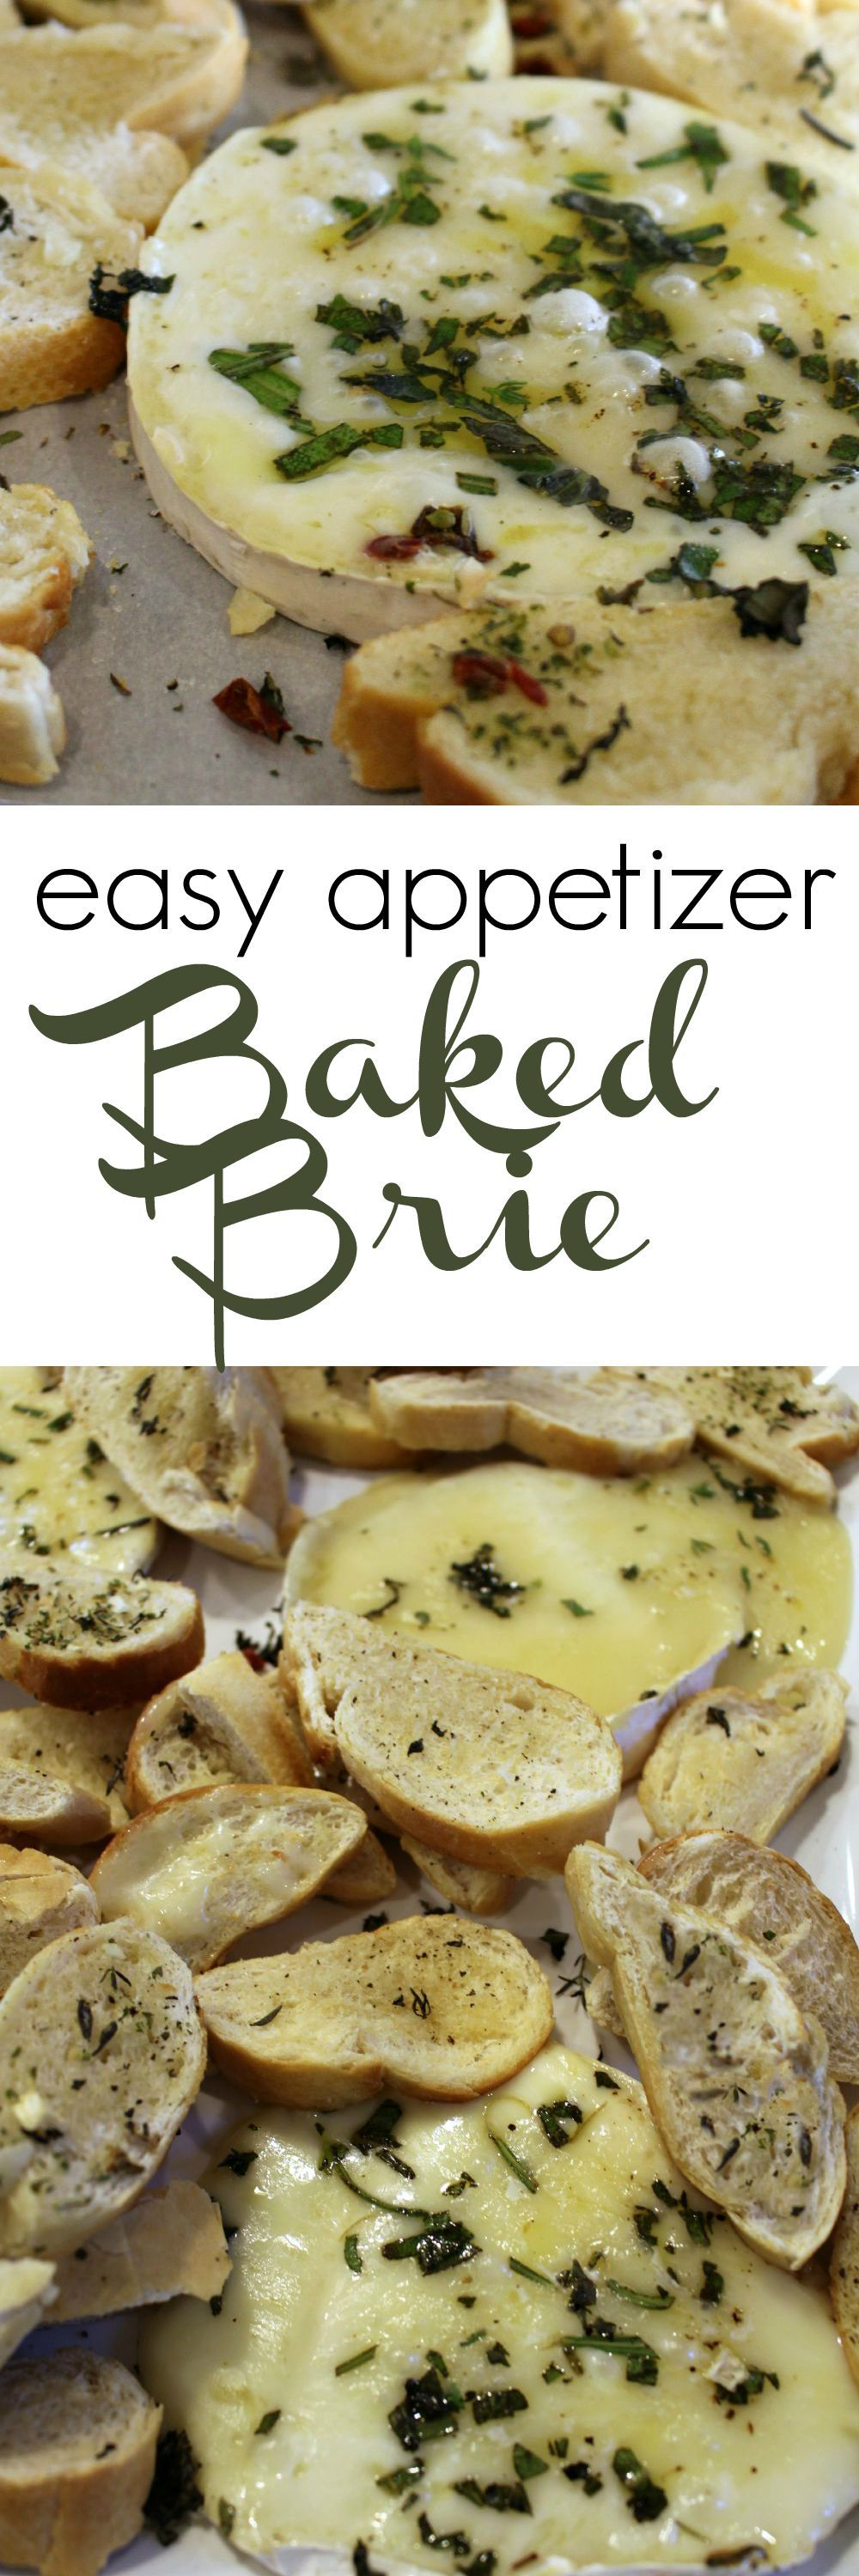 Easy Baked Brie Appetizer - seasoned with fresh herbs ...